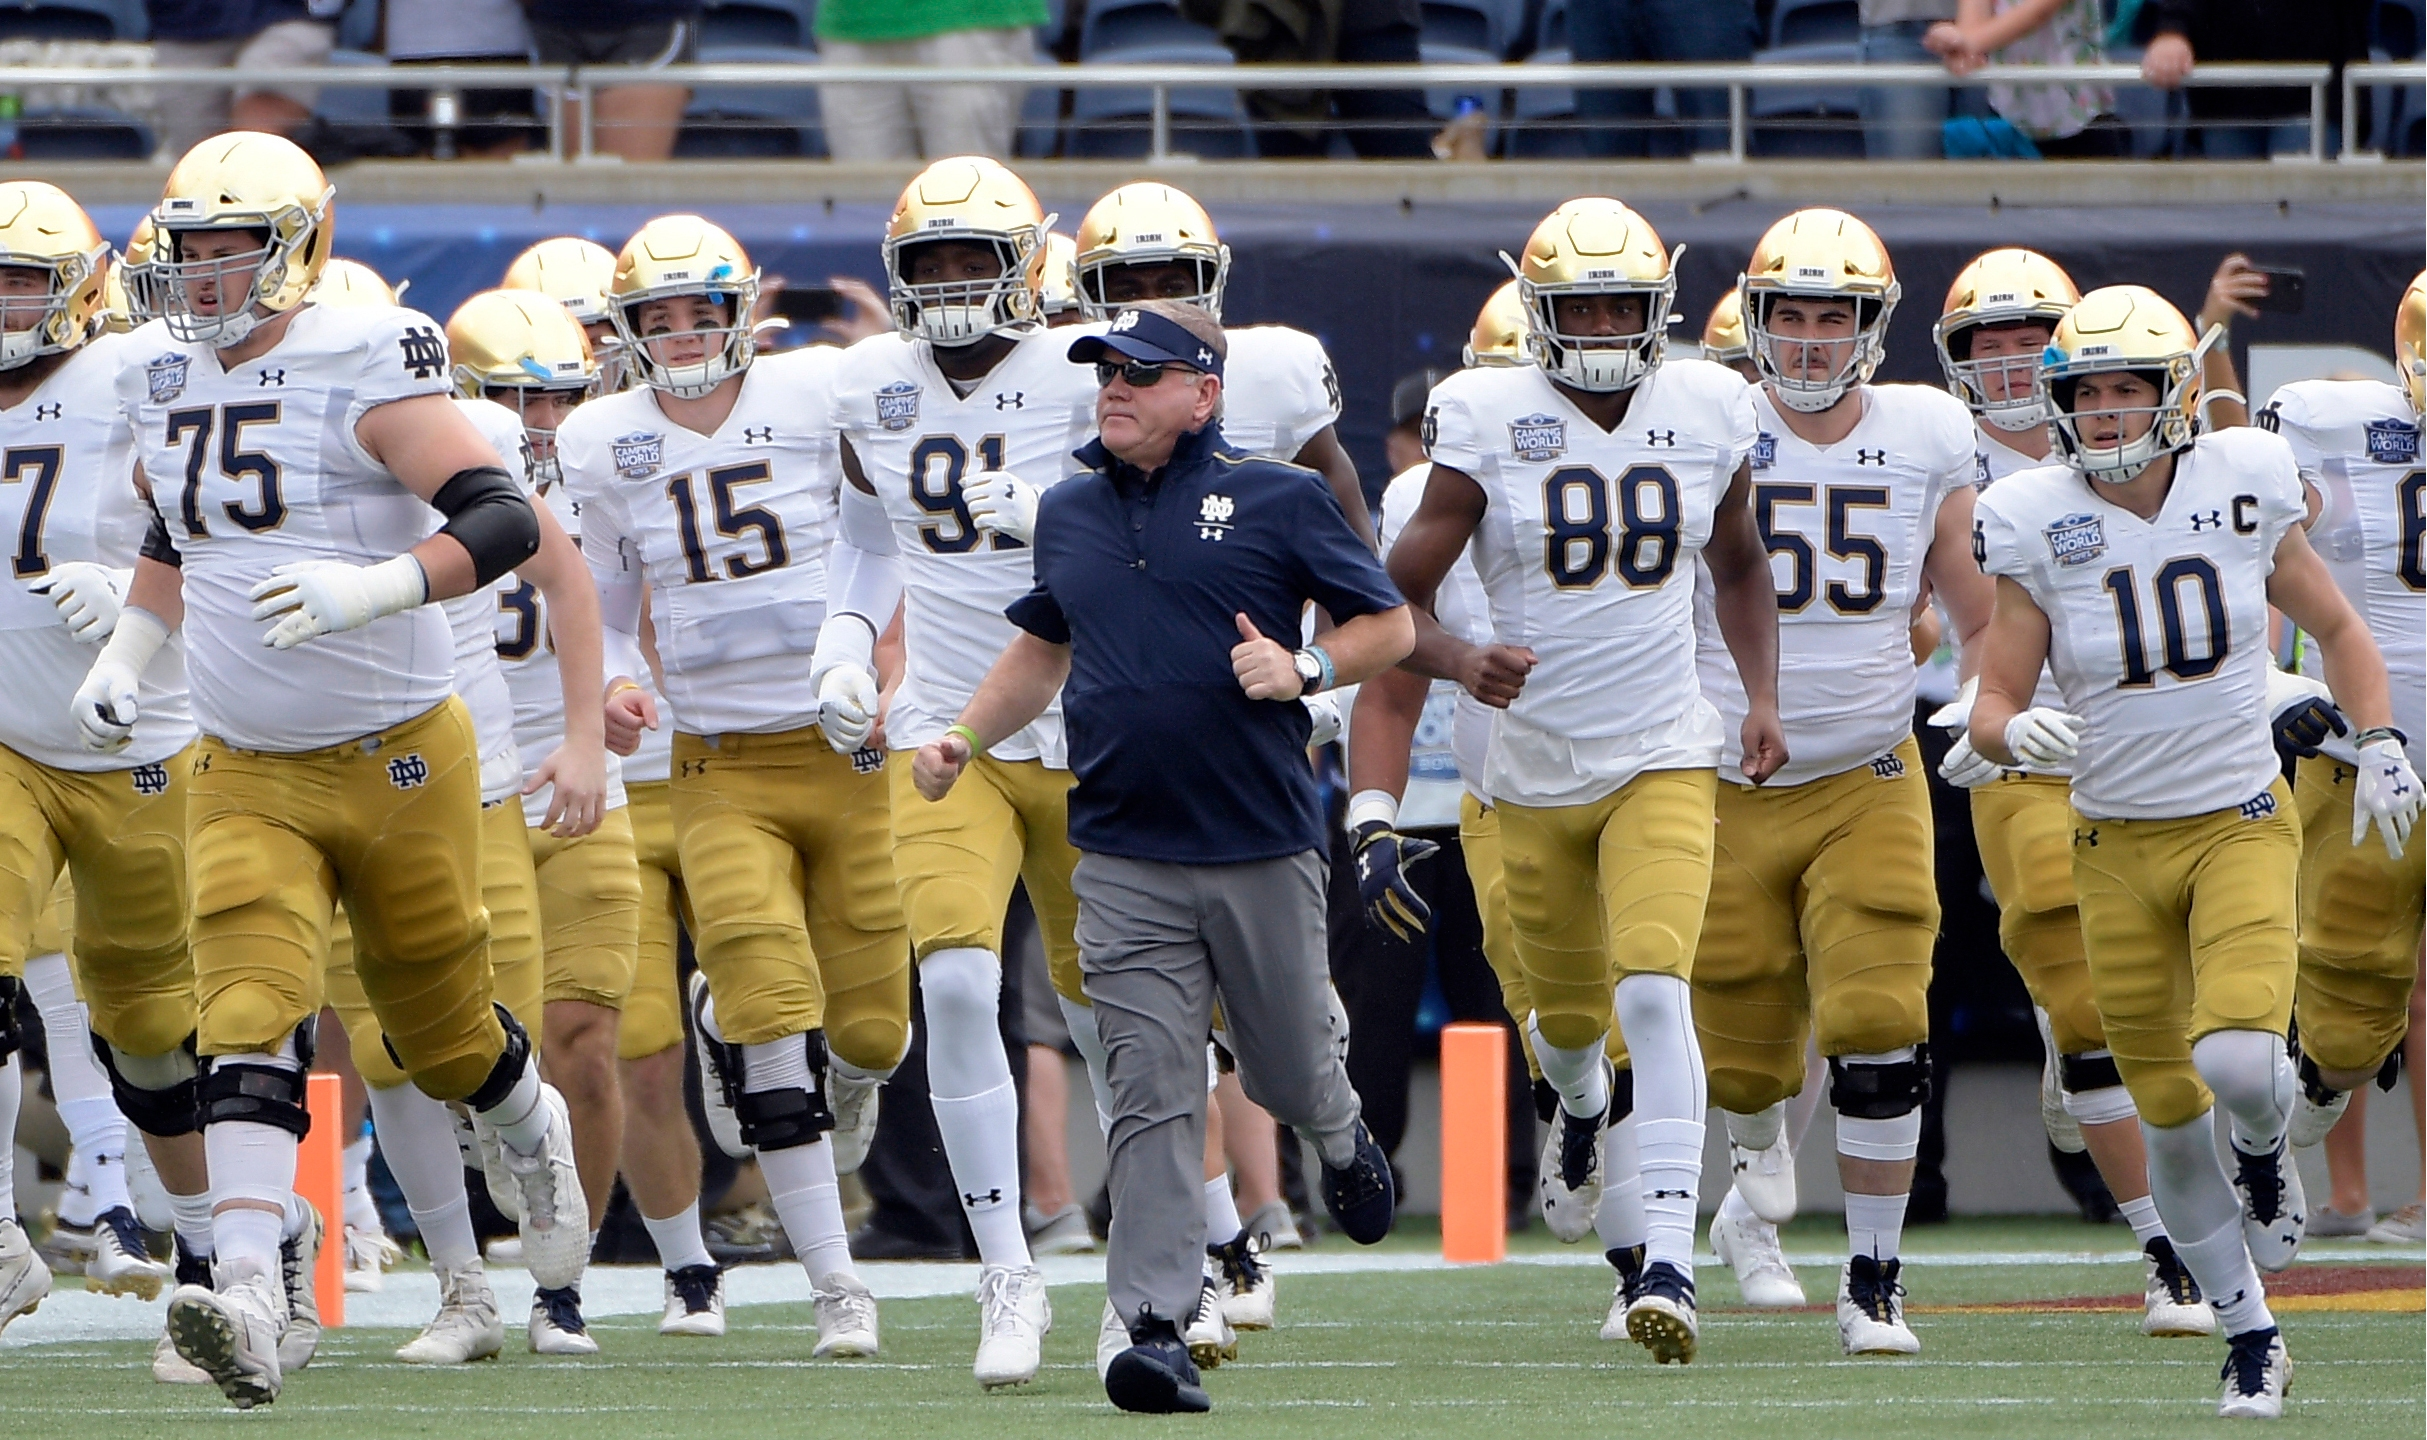 In this Dec. 28, 2019, file photo, Notre Dame head coach Brian Kelly, center, runs onto the field with his players before the Camping World Bowl NCAA college football game against Iowa State in Orlando, Fla.